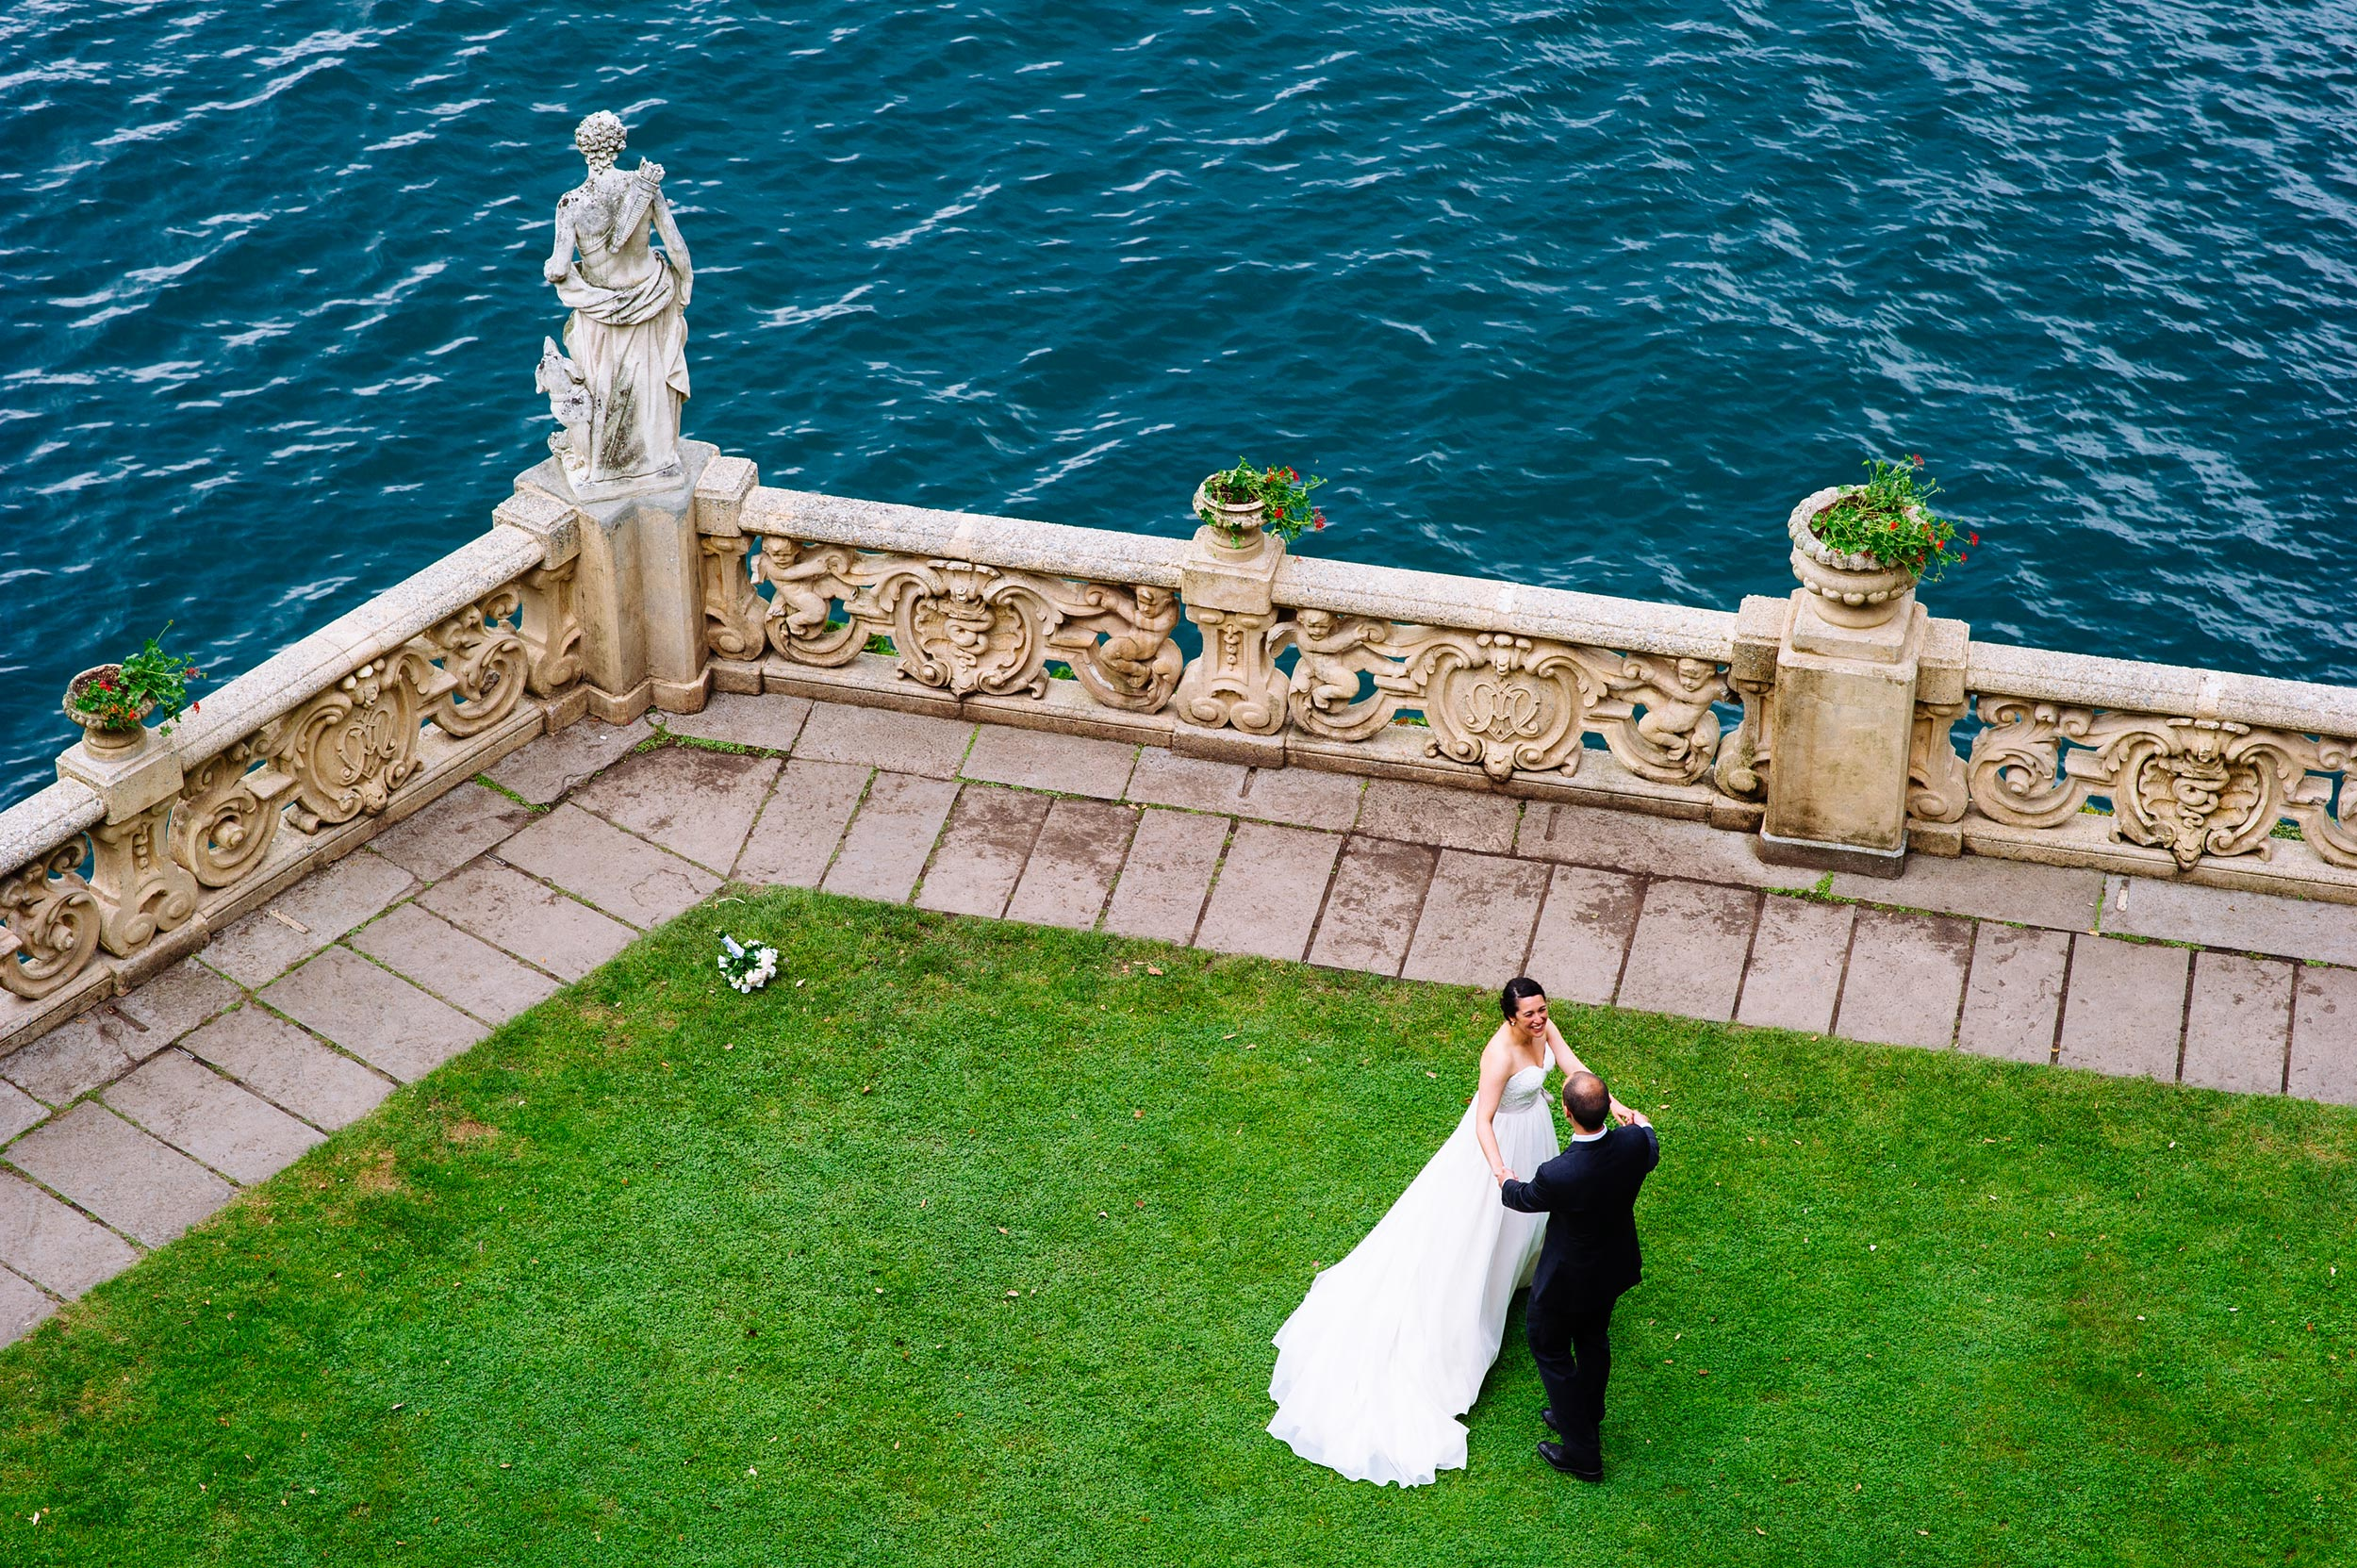 bride-and-groom-dancing-balcony-Villa-Del-Balbianello-Bellagio-Lake-Como-Wedding-Photographer-Italy-Alessandro-Avenali.jpg